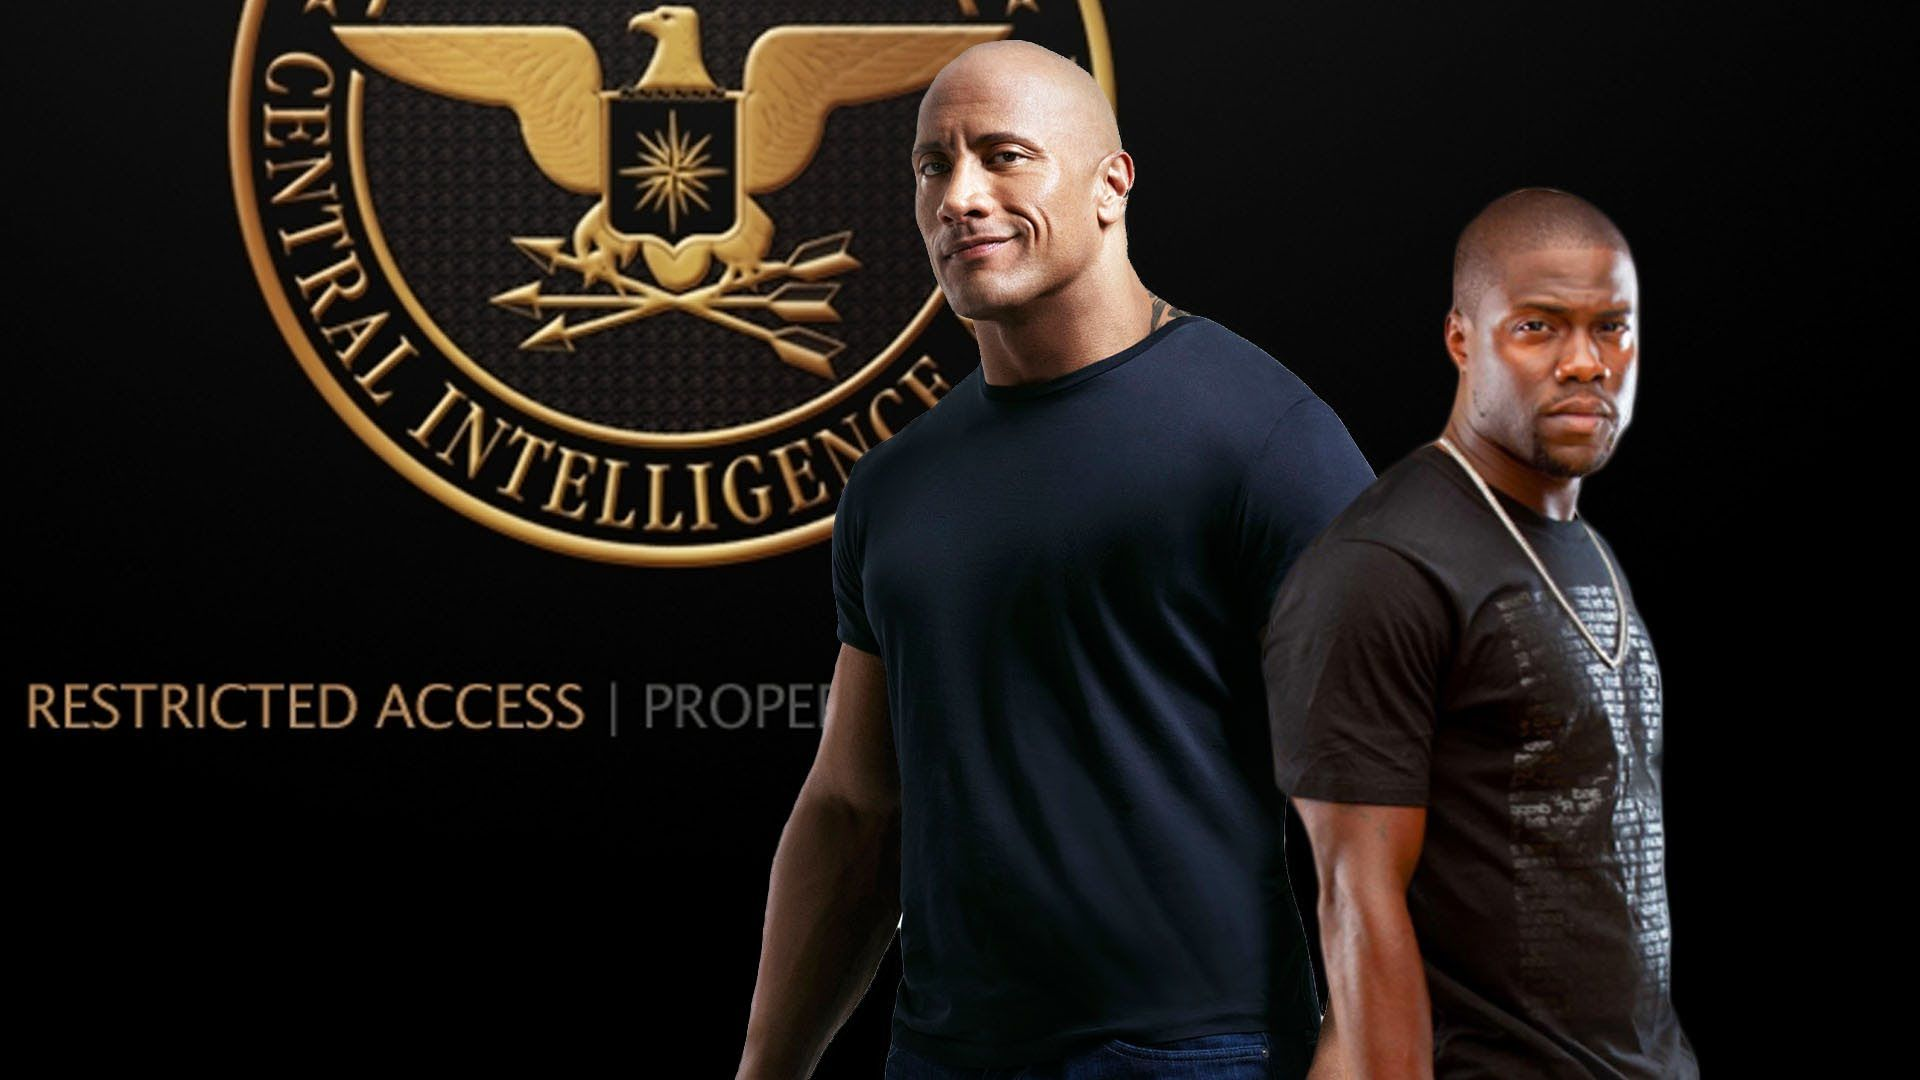 Central Intelligence Background